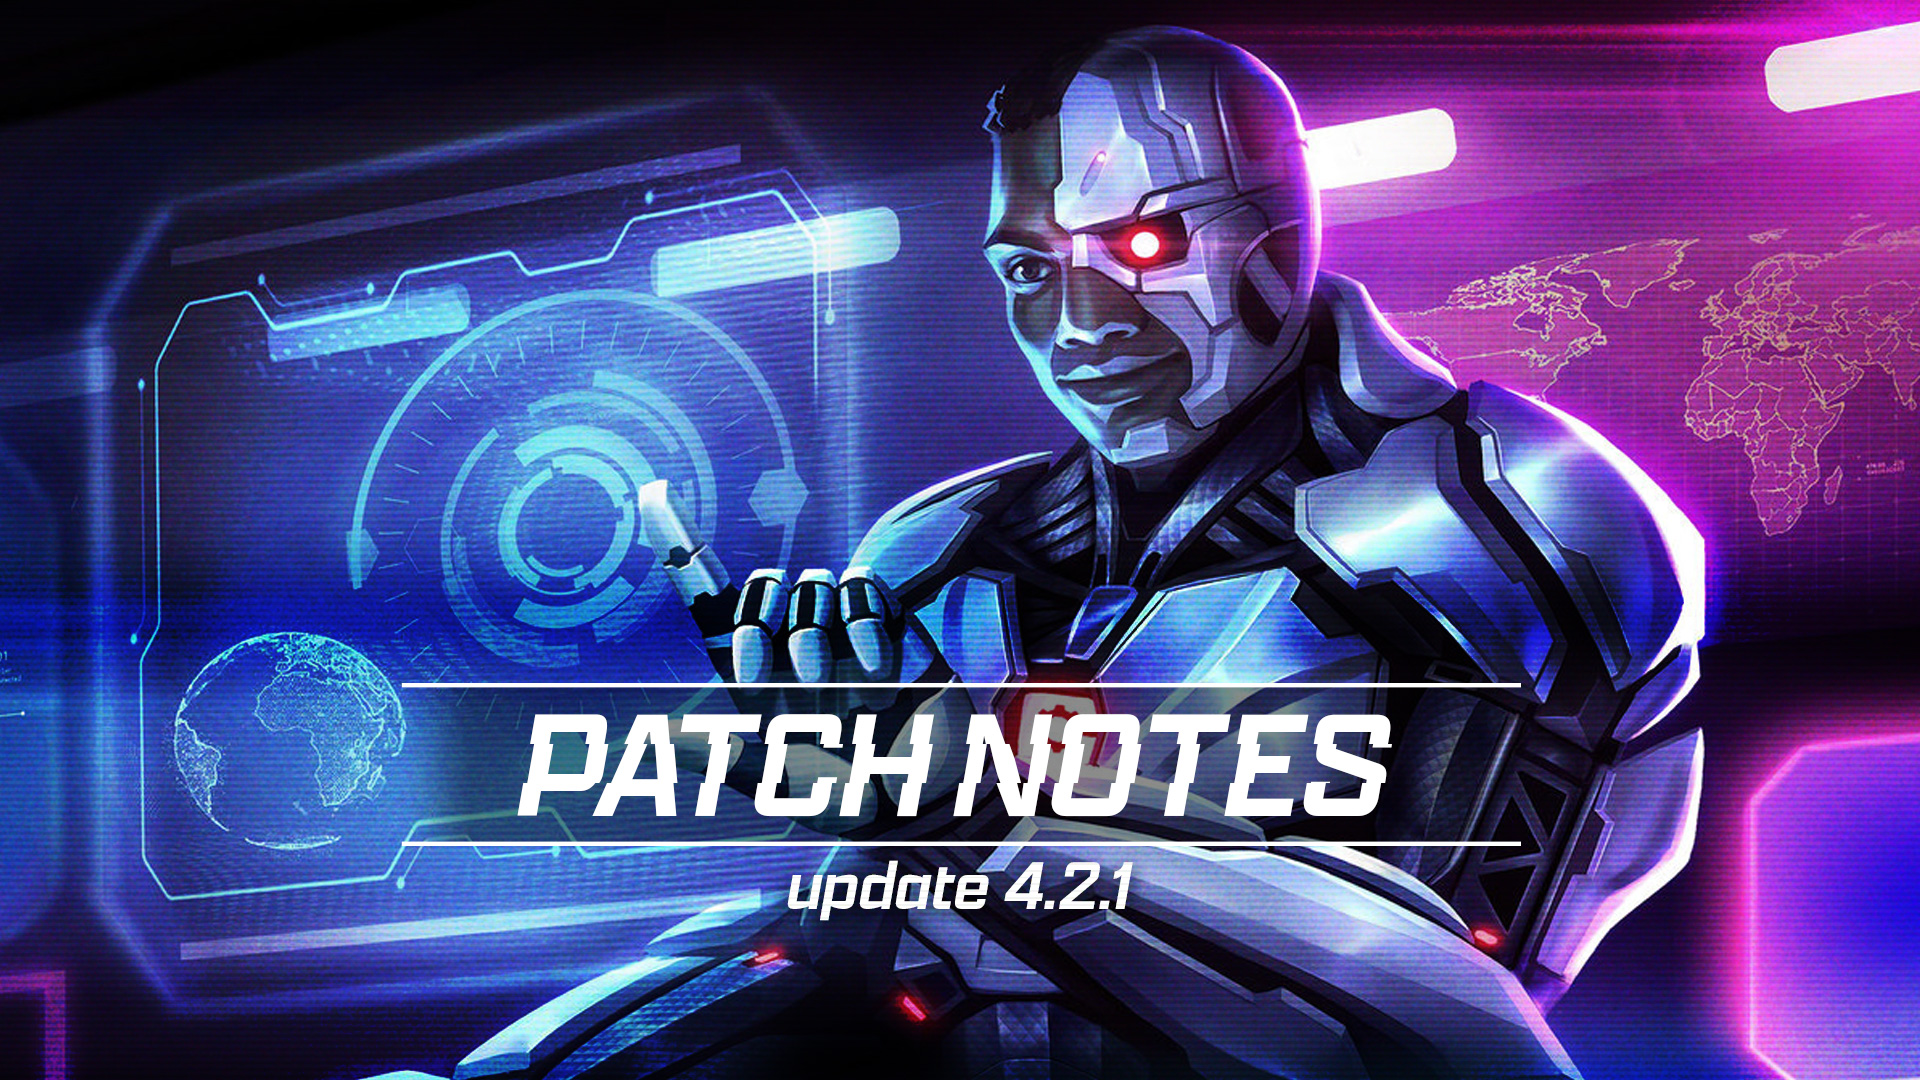 PATCH_NOTES_421.jpg